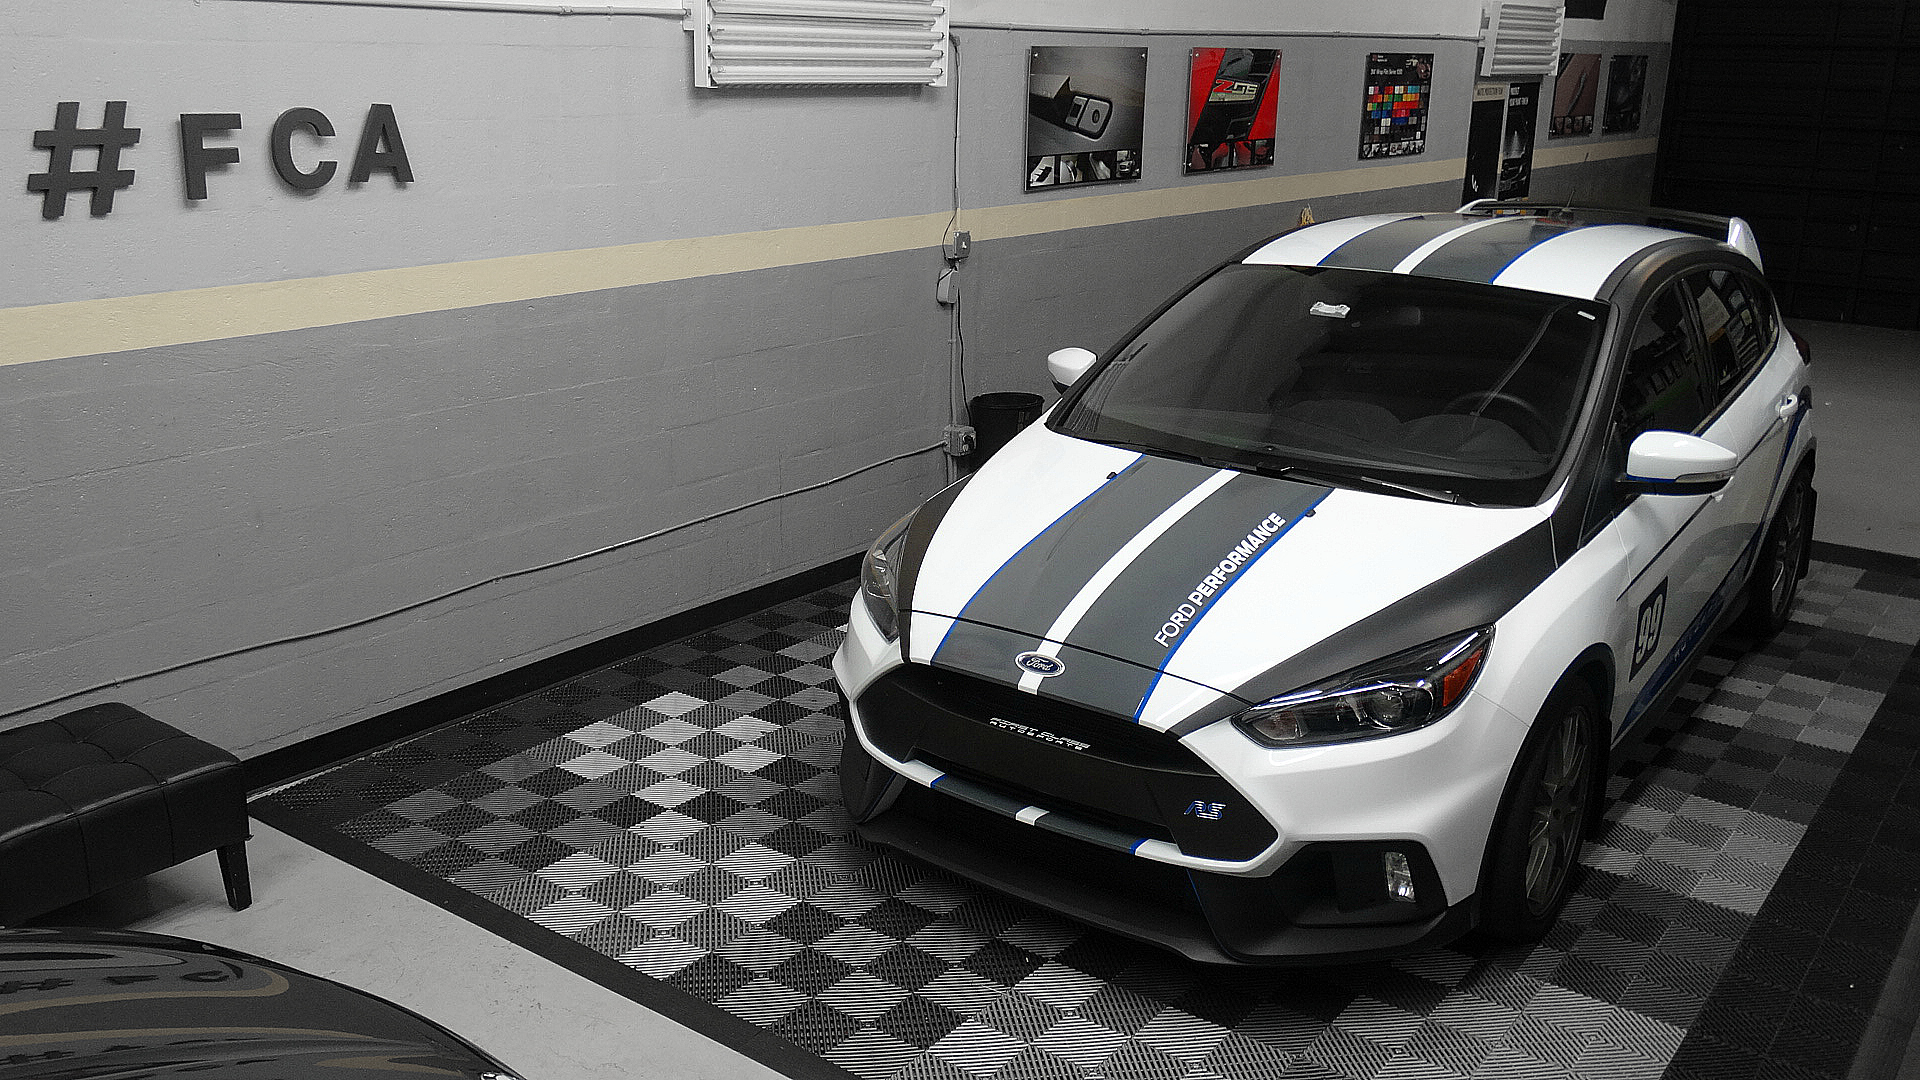 Car Detailing Prices >> Focus RS armored Clear bra paint protection custom stripes | MIAMI CAR WRAPS | VEHICLE WRAPS ...